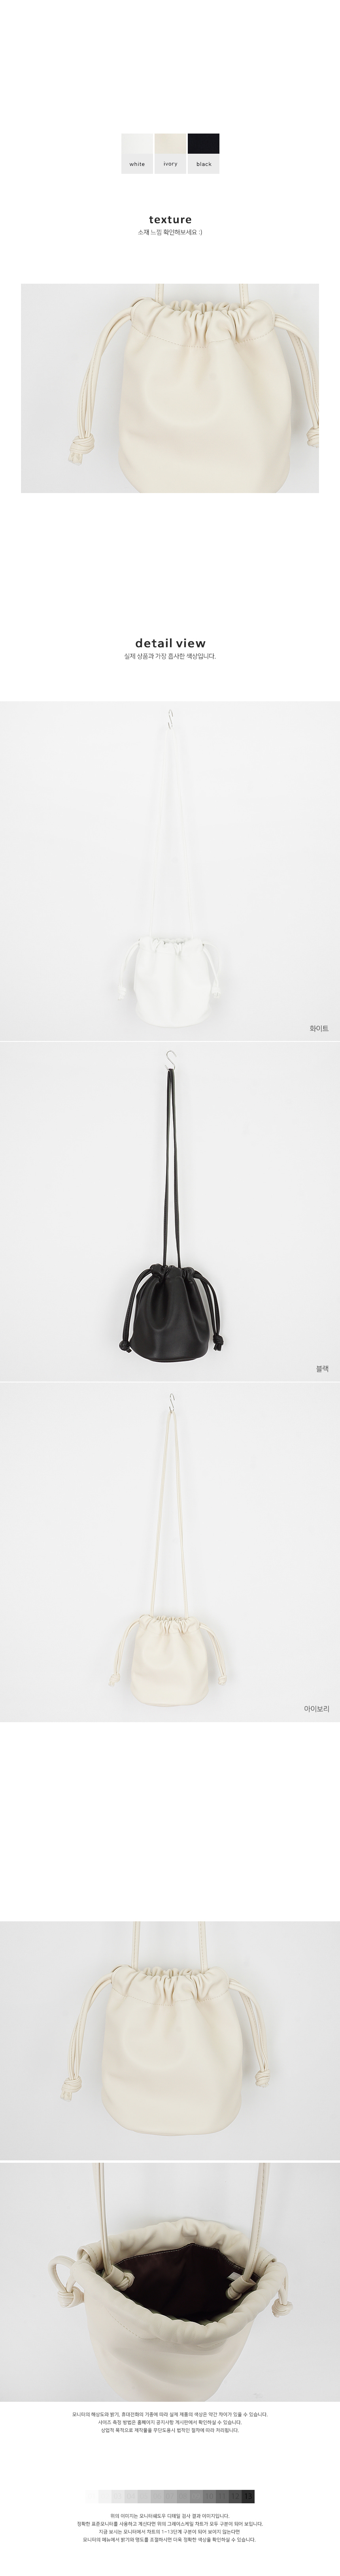 Soft cooking bag